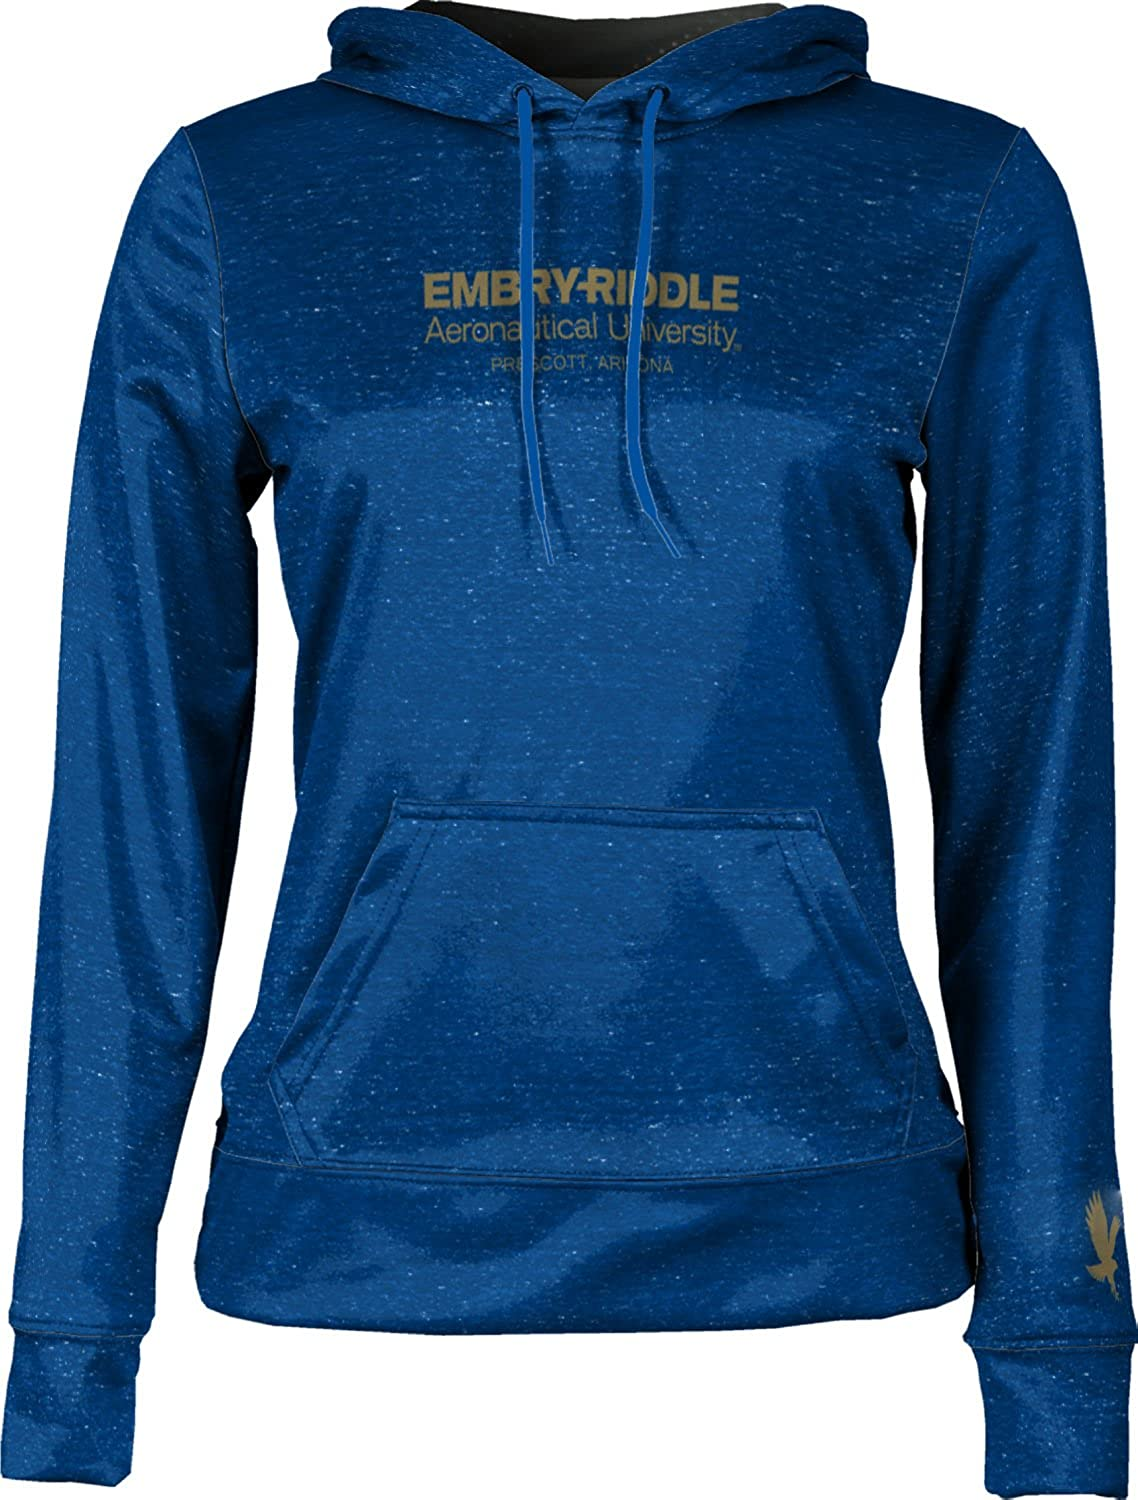 Embry-Riddle Aeronautical University Prescott Girls Pullover Hoodie Game Time School Spirit Sweatshirt